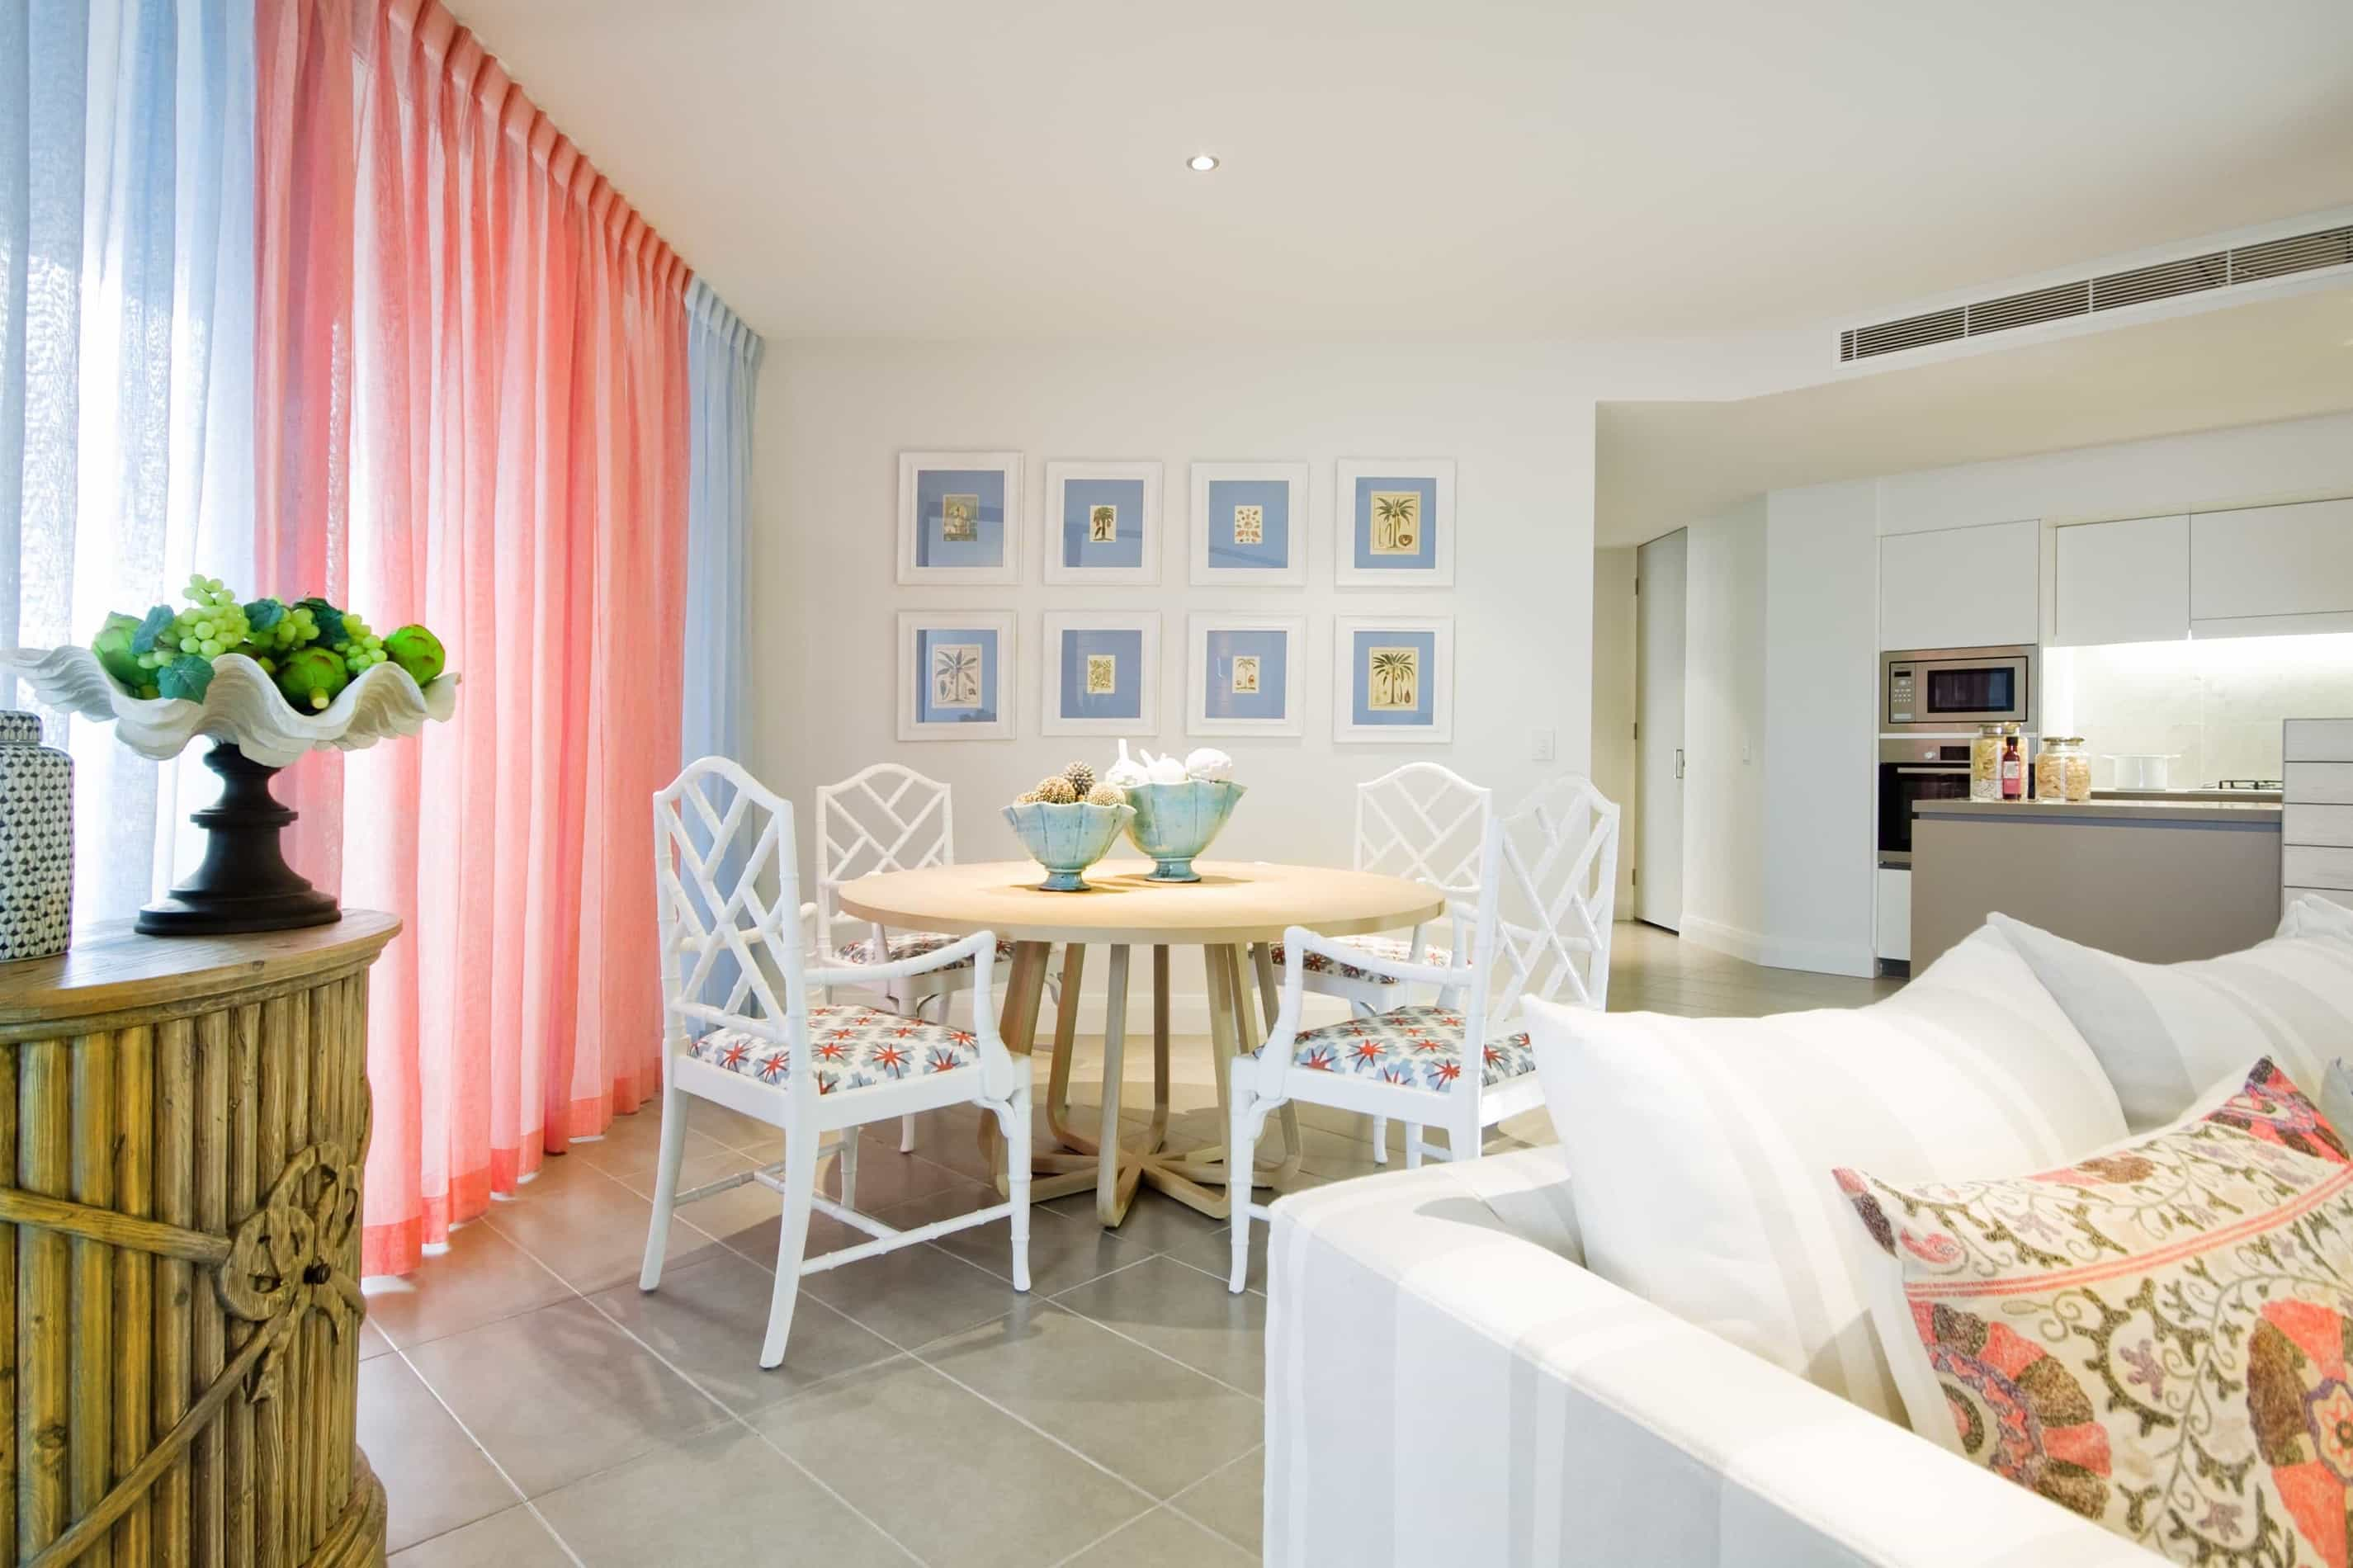 Featured Image of Coral And Dusty Blue Dining Room With Bamboo Chairs